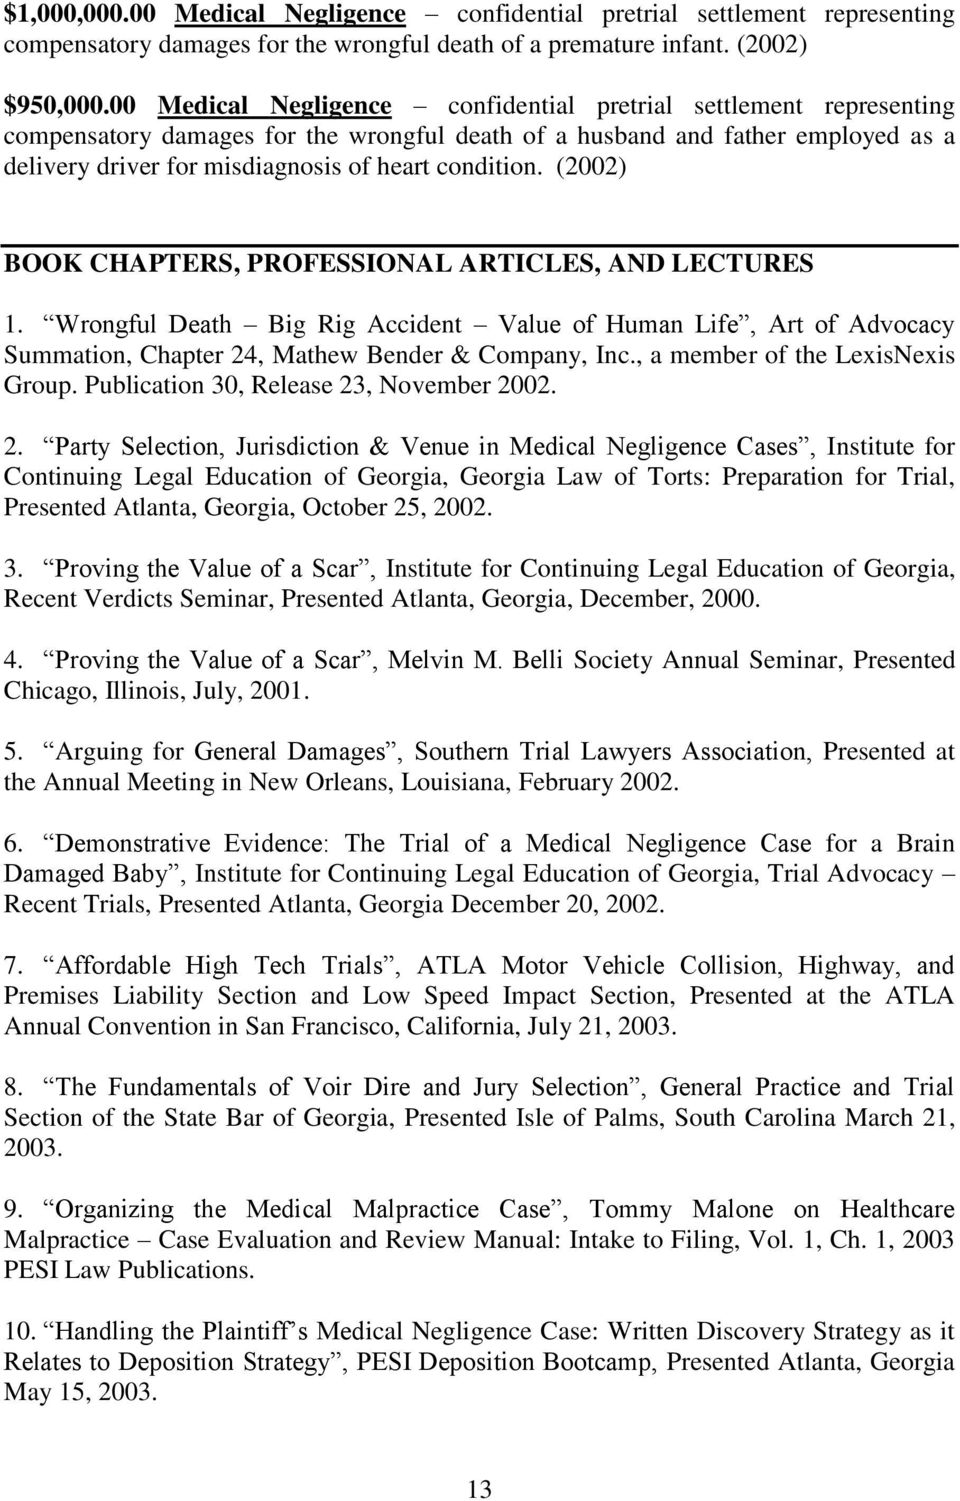 condition. (2002) BOOK CHAPTERS, PROFESSIONAL ARTICLES, AND LECTURES 1. Wrongful Death Big Rig Accident Value of Human Life, Art of Advocacy Summation, Chapter 24, Mathew Bender & Company, Inc.